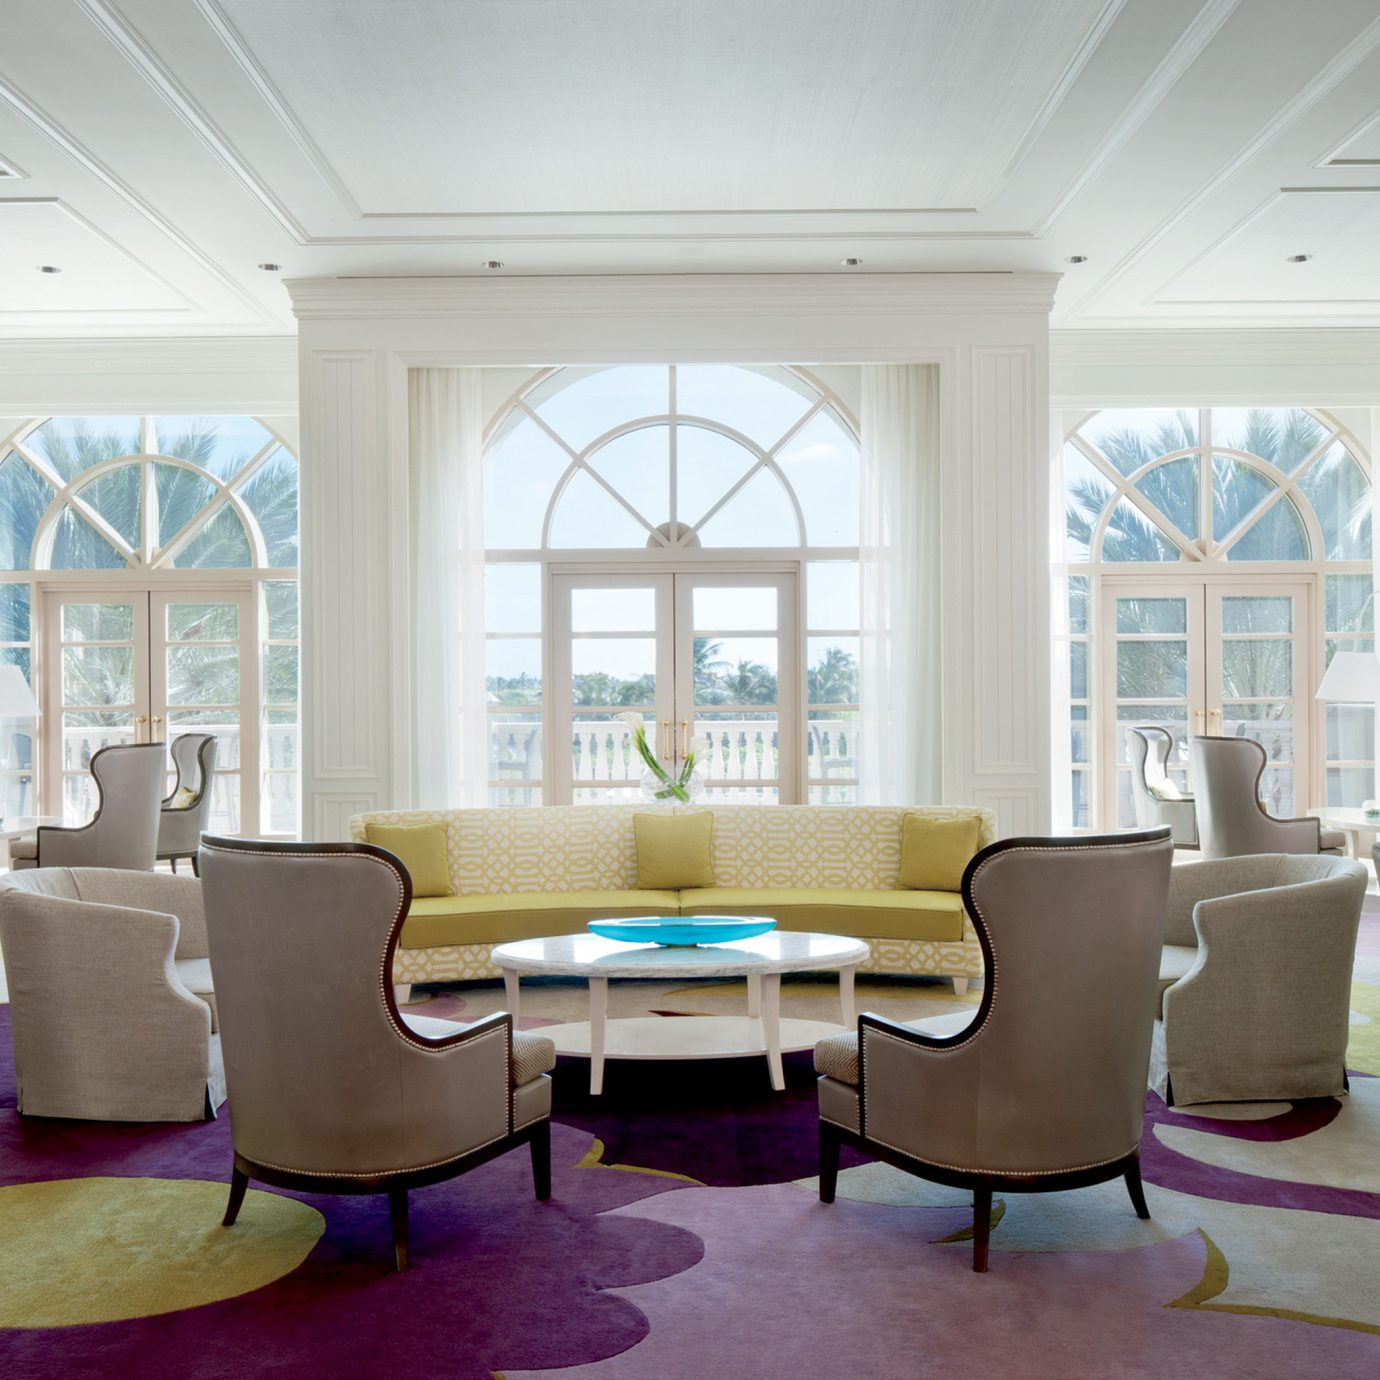 Hotels Lounge Luxury Scenic views Trip Ideas living room property home Lobby